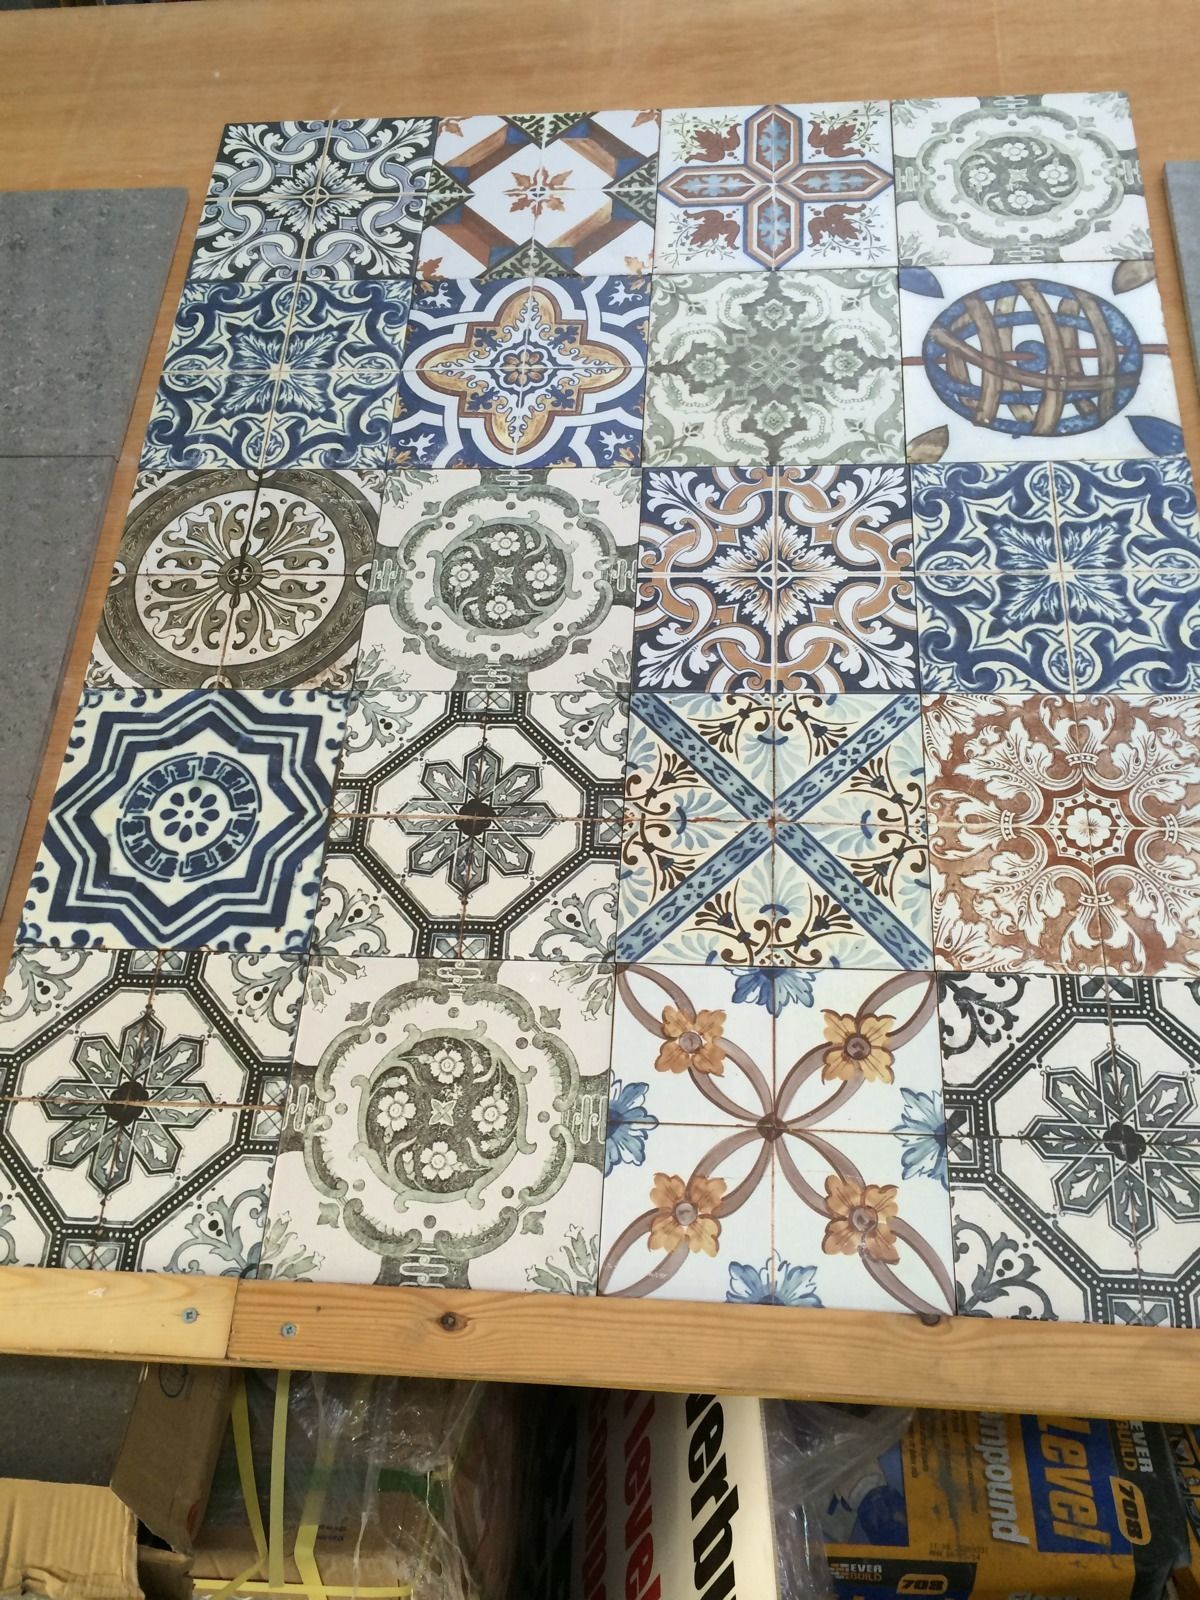 Moroccan style vintage shabby chic topps nikea wall floor tile moroccan style vintage shabby chic topps nikea wall floor tile ebay dailygadgetfo Image collections